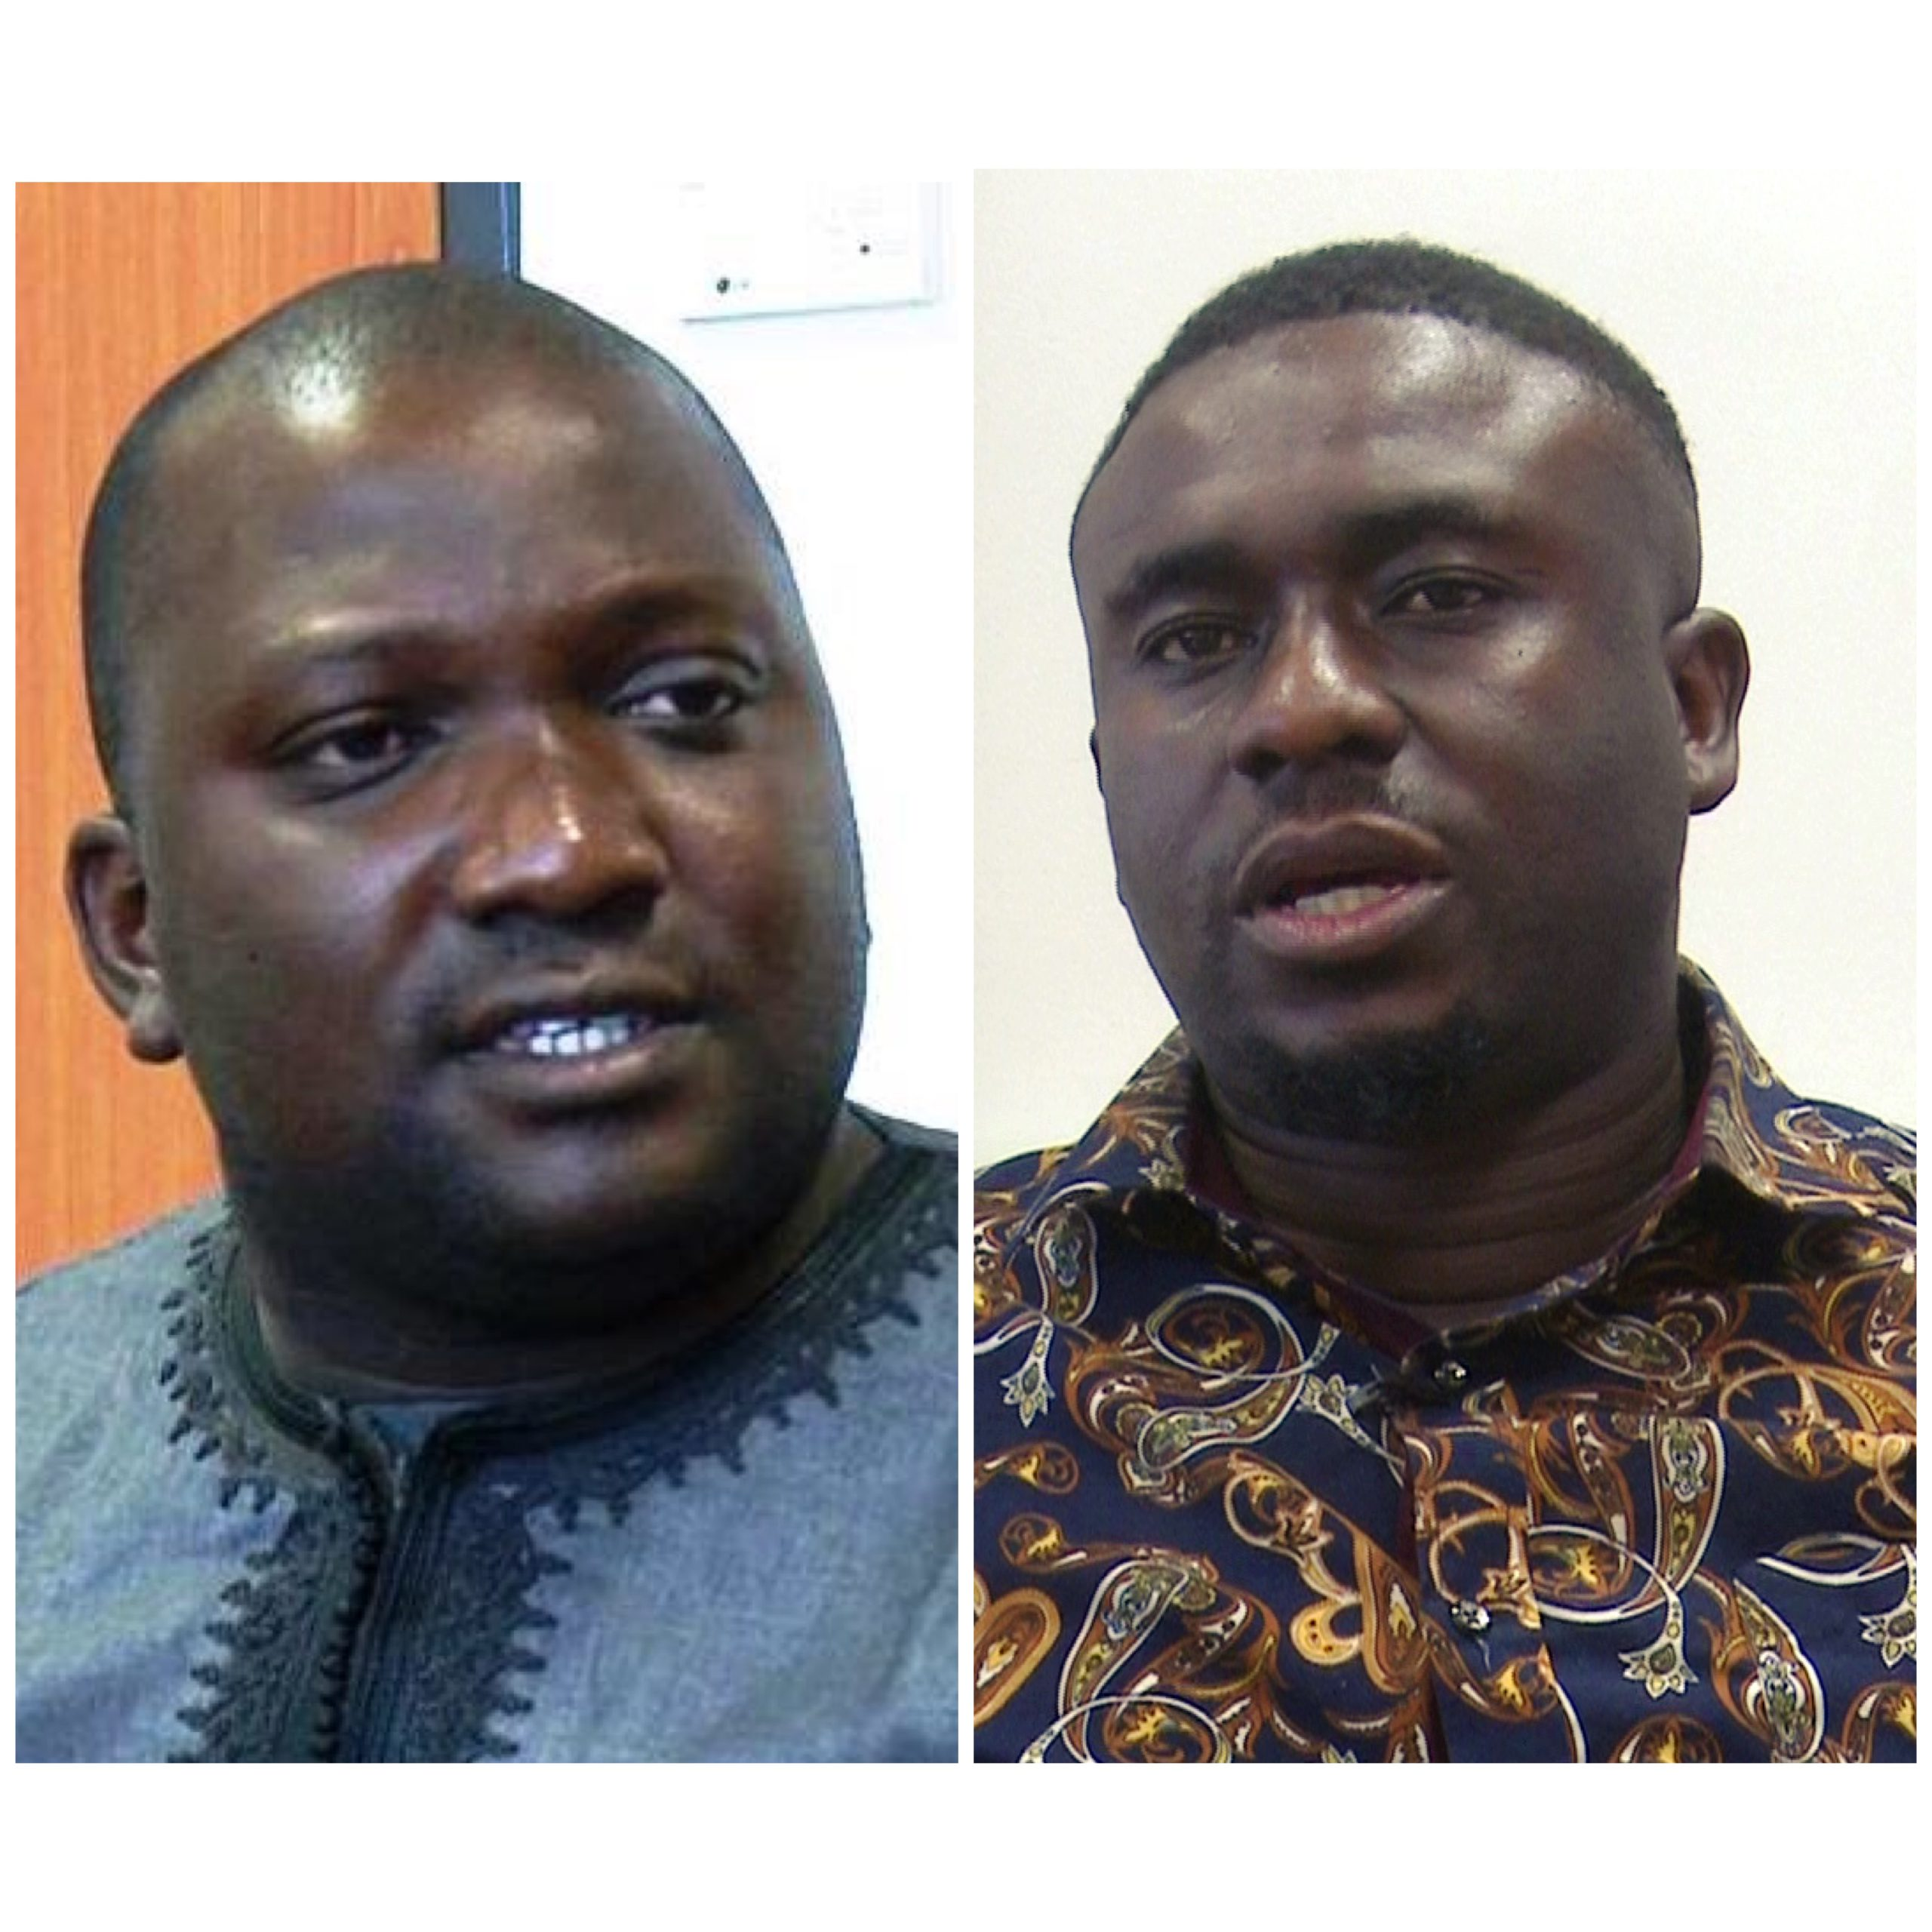 EFCC Arrests Three Suspects Over Impersonation, Name Dropping